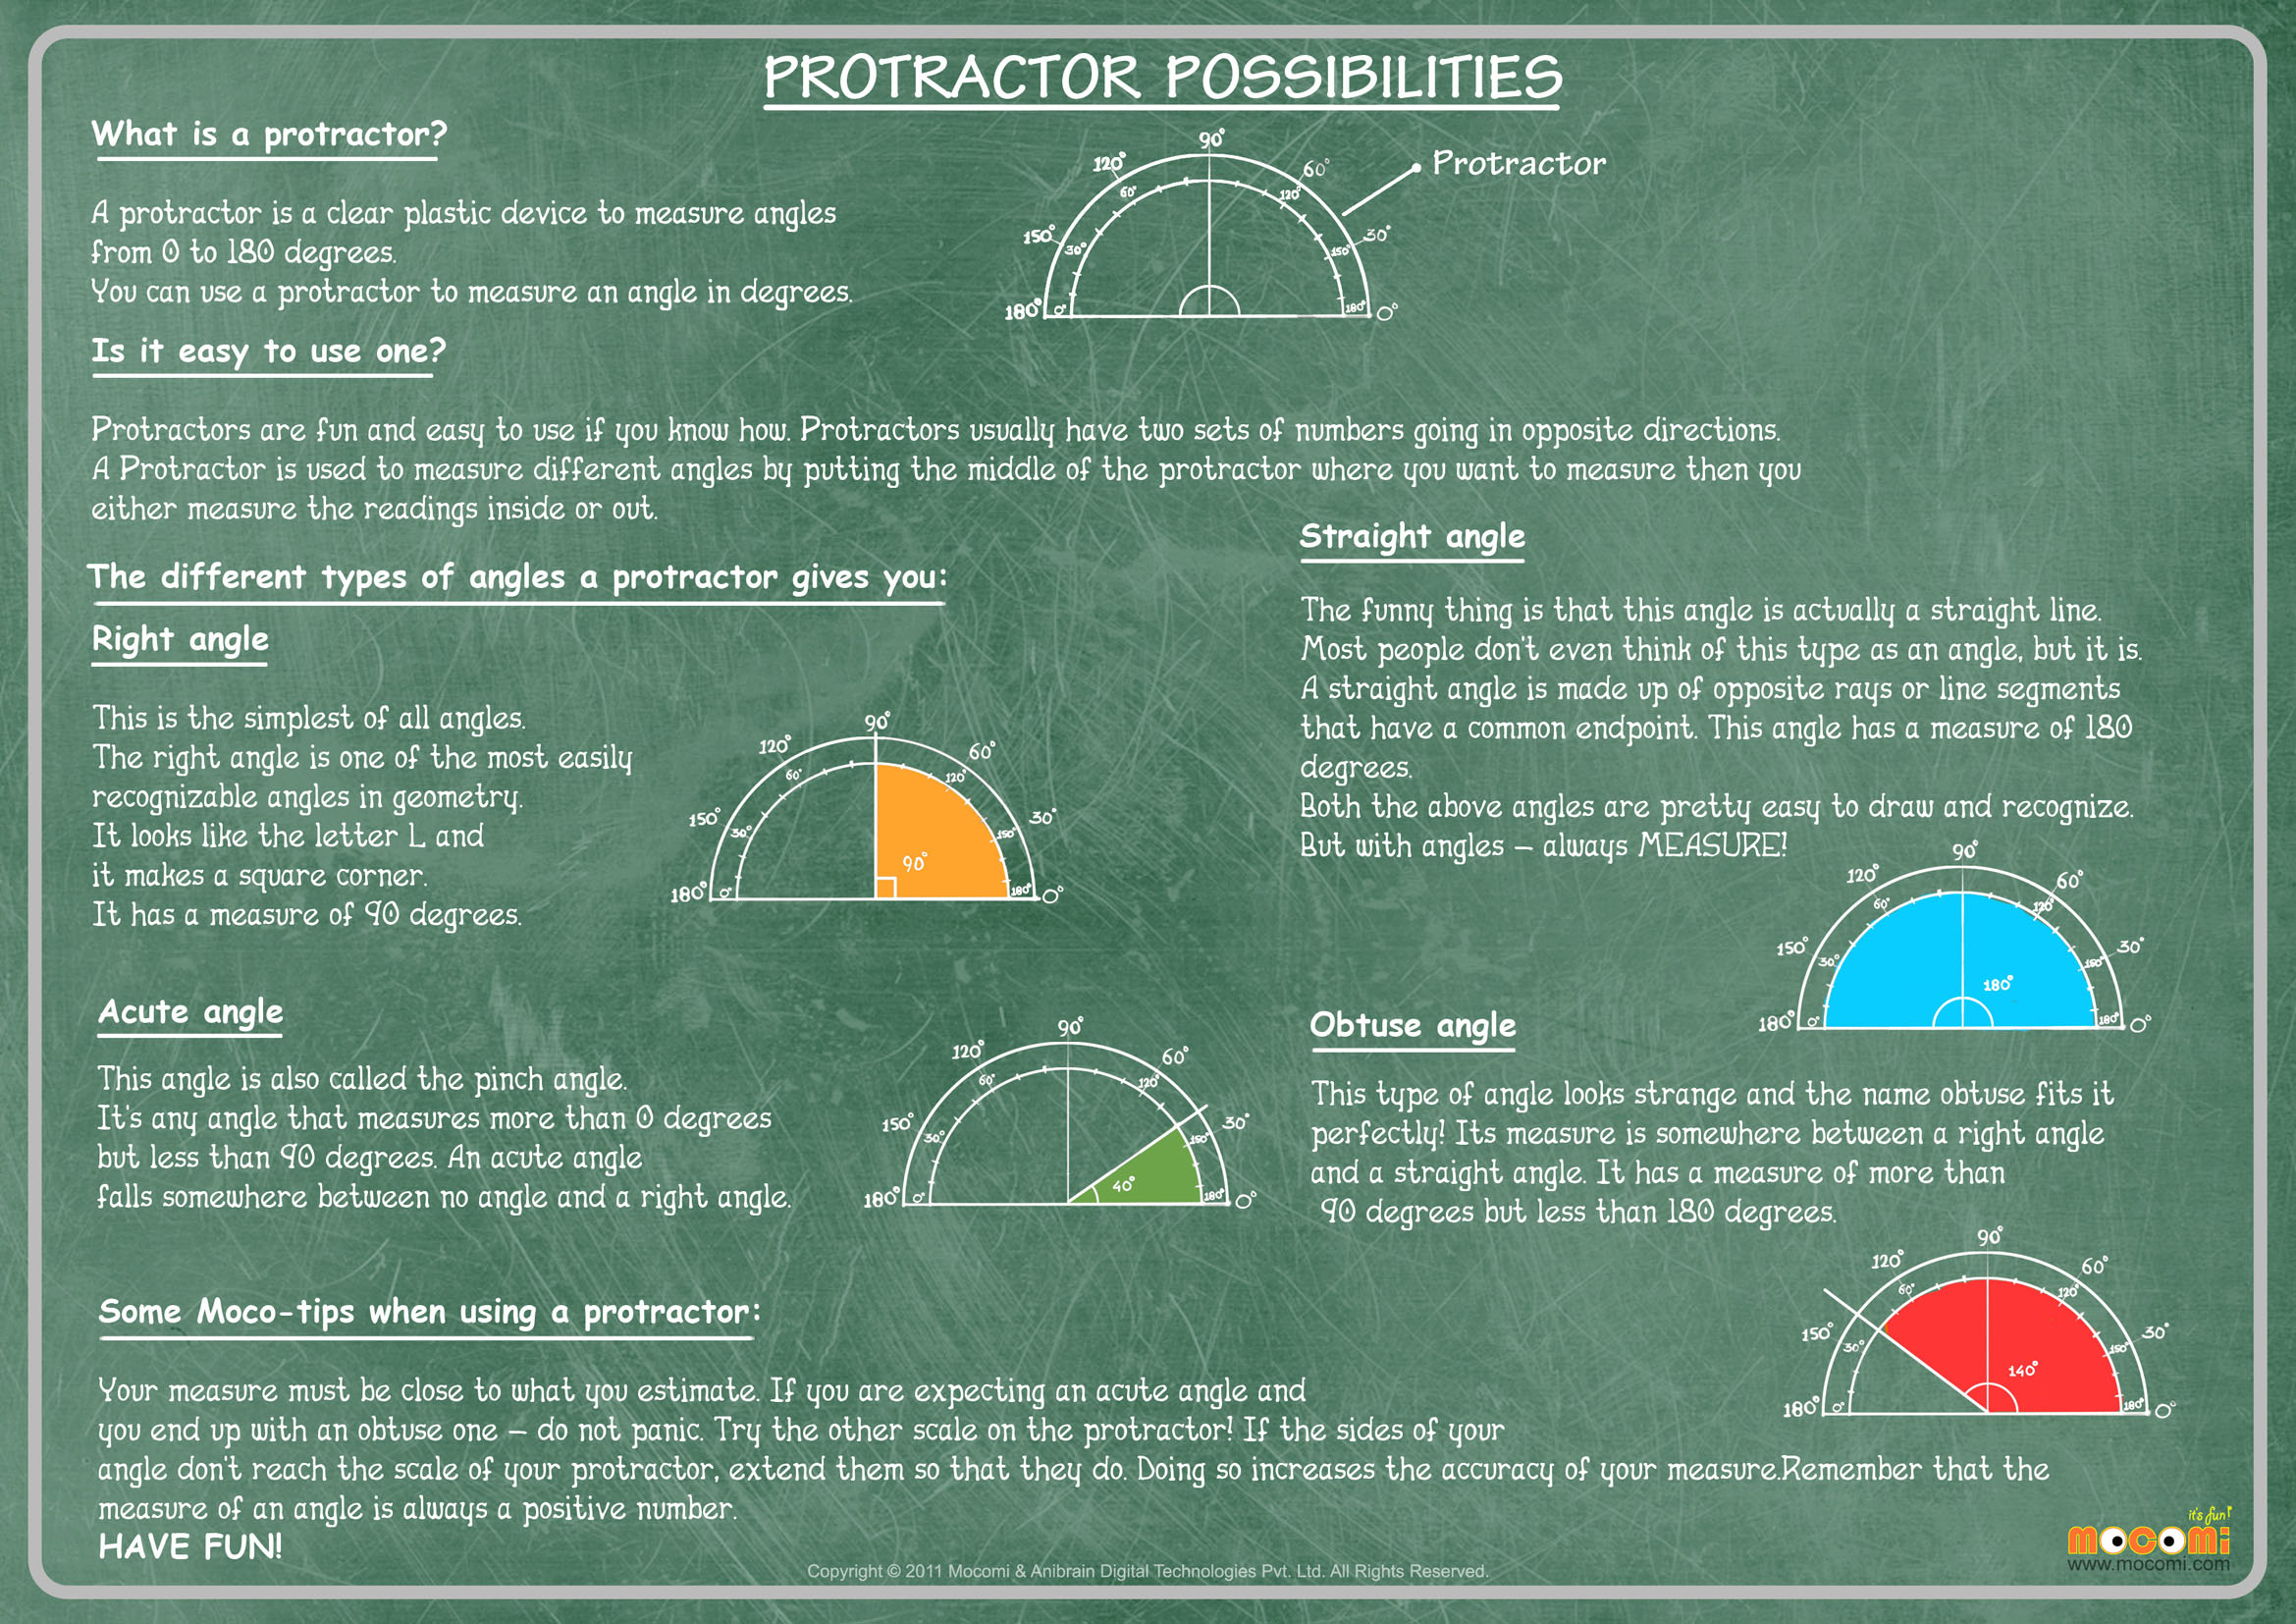 What is a Protractor?